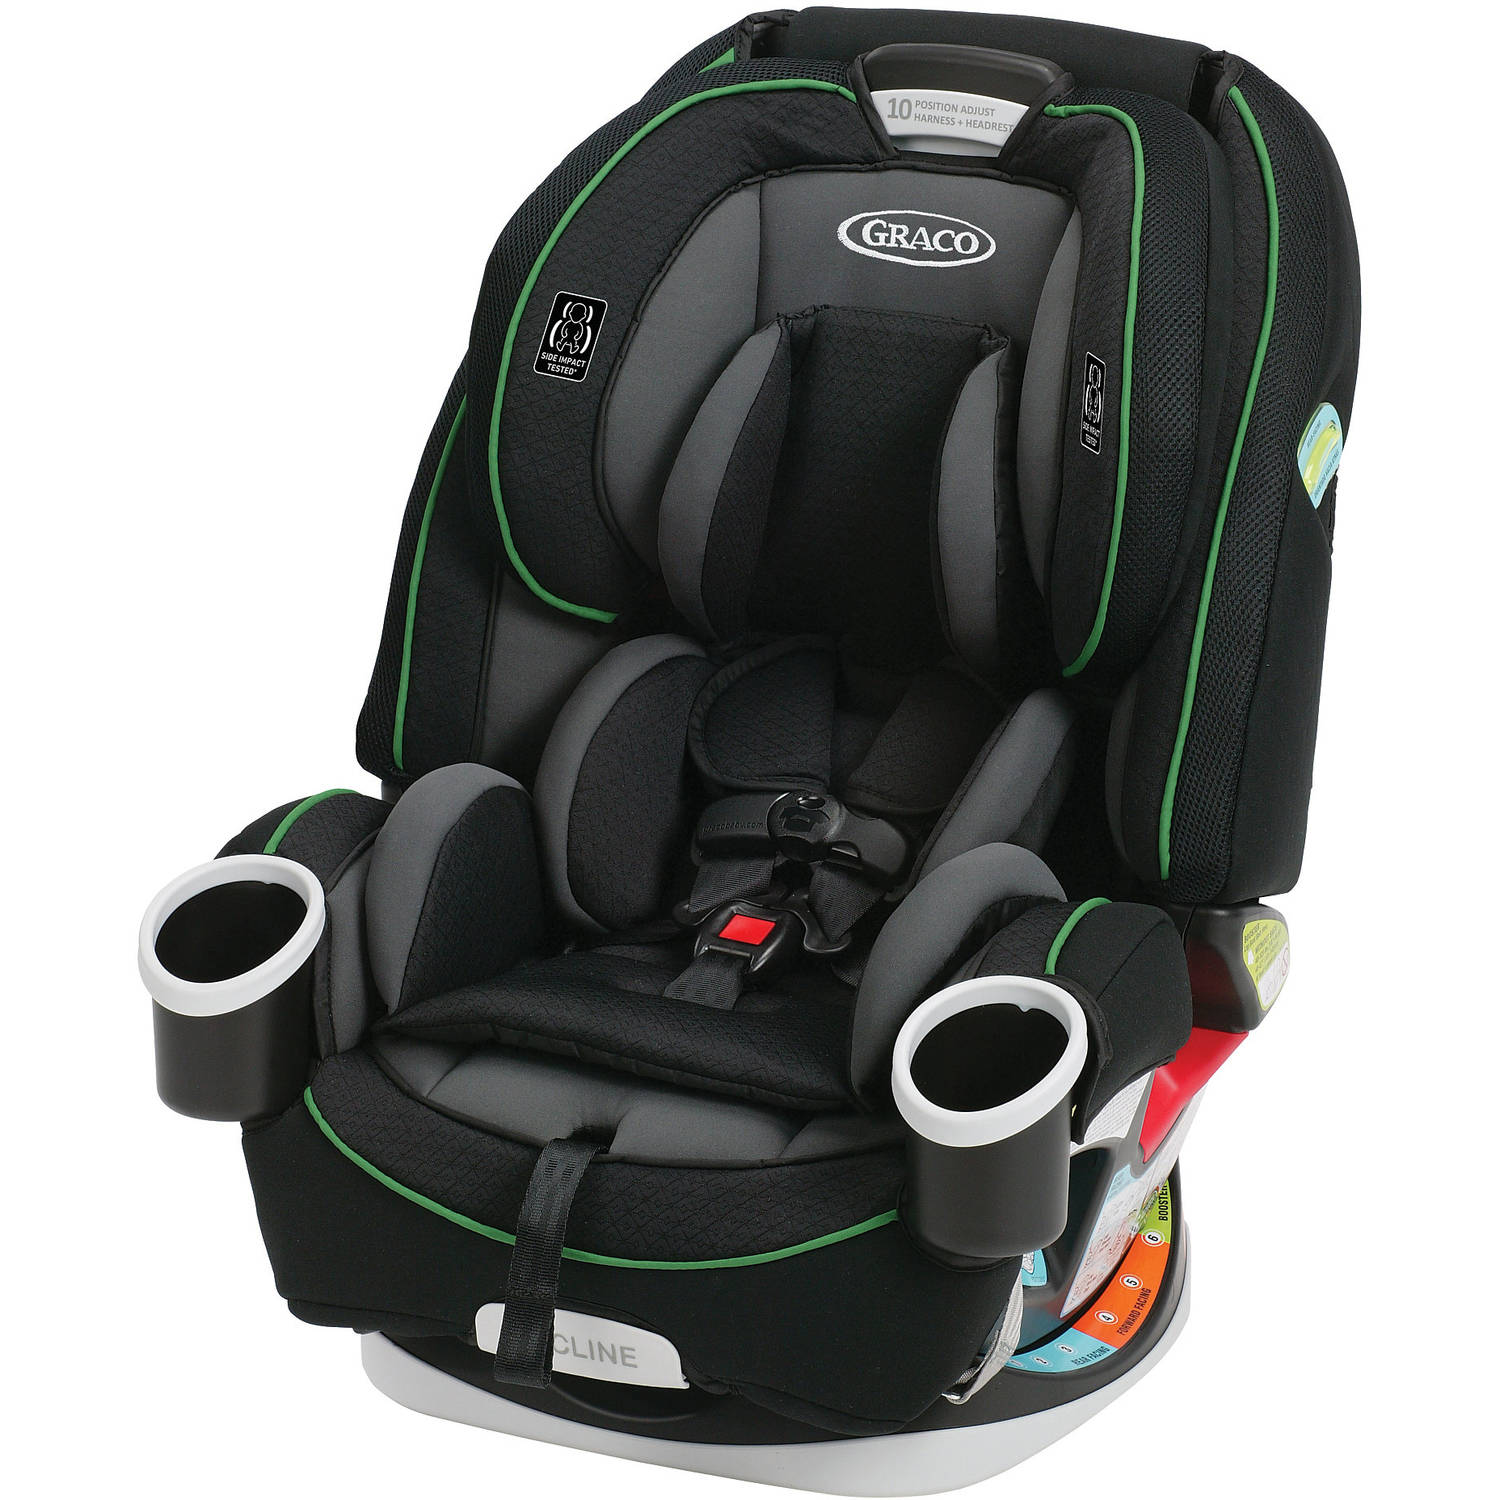 Graco 4Ever All-in-1 Convertible Car Seat, Dunwoody